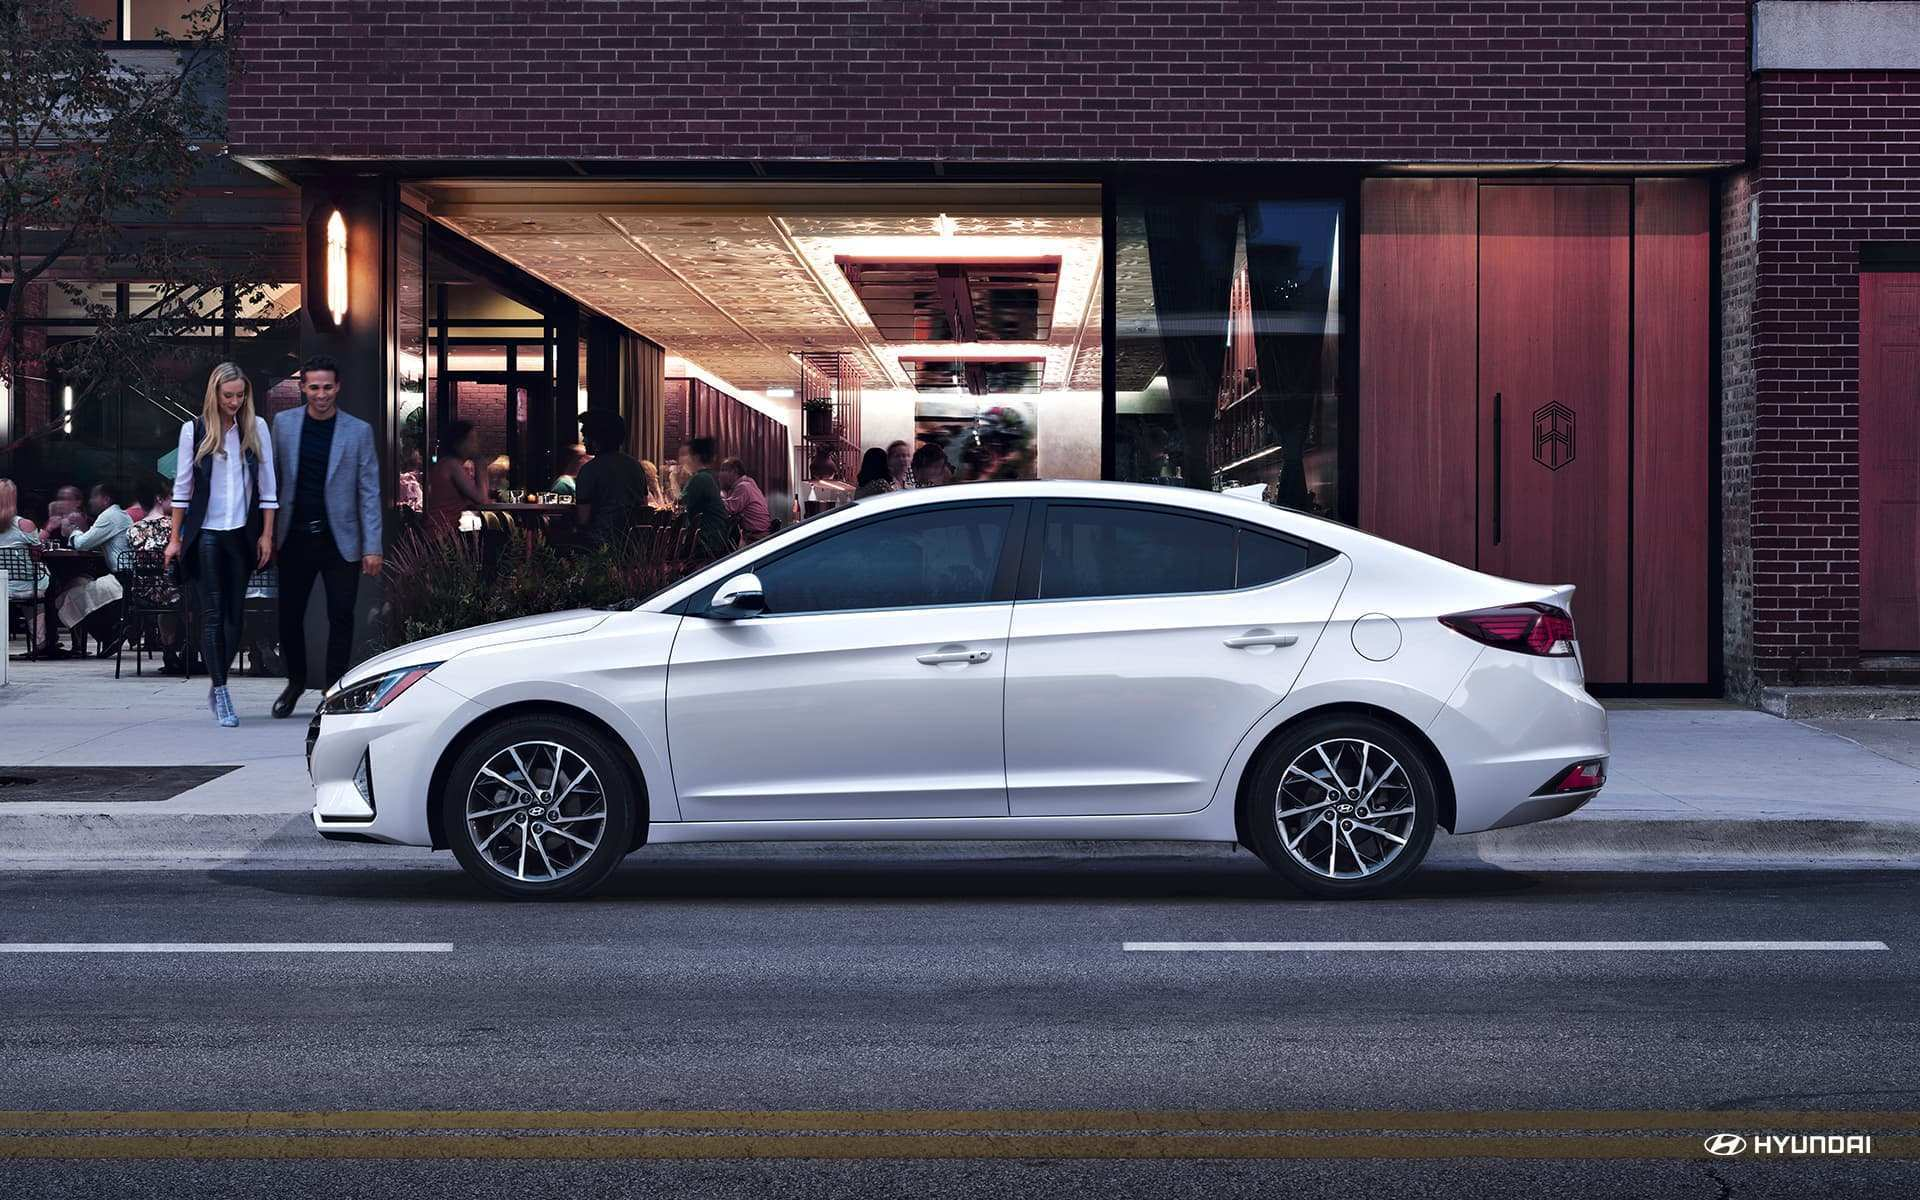 54 All New 2020 Hyundai Elantra Sedan Price And Review